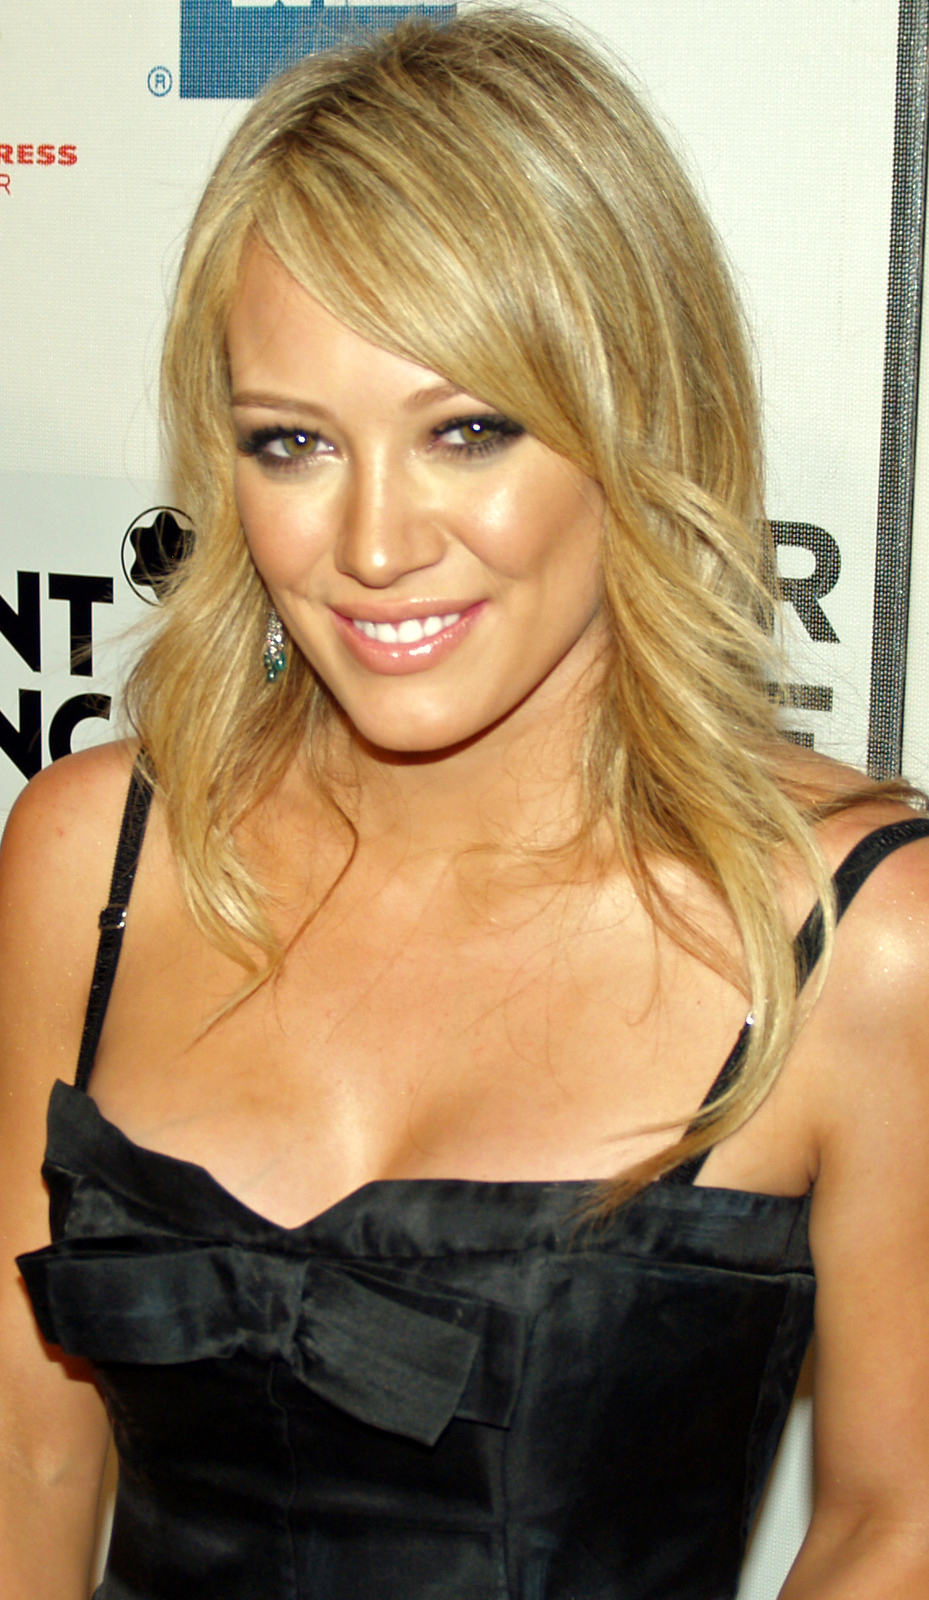 File:Hilary Duff 2 by David Shankbone.jpg - Wikimedia Commons Christina Aguilera Obituary